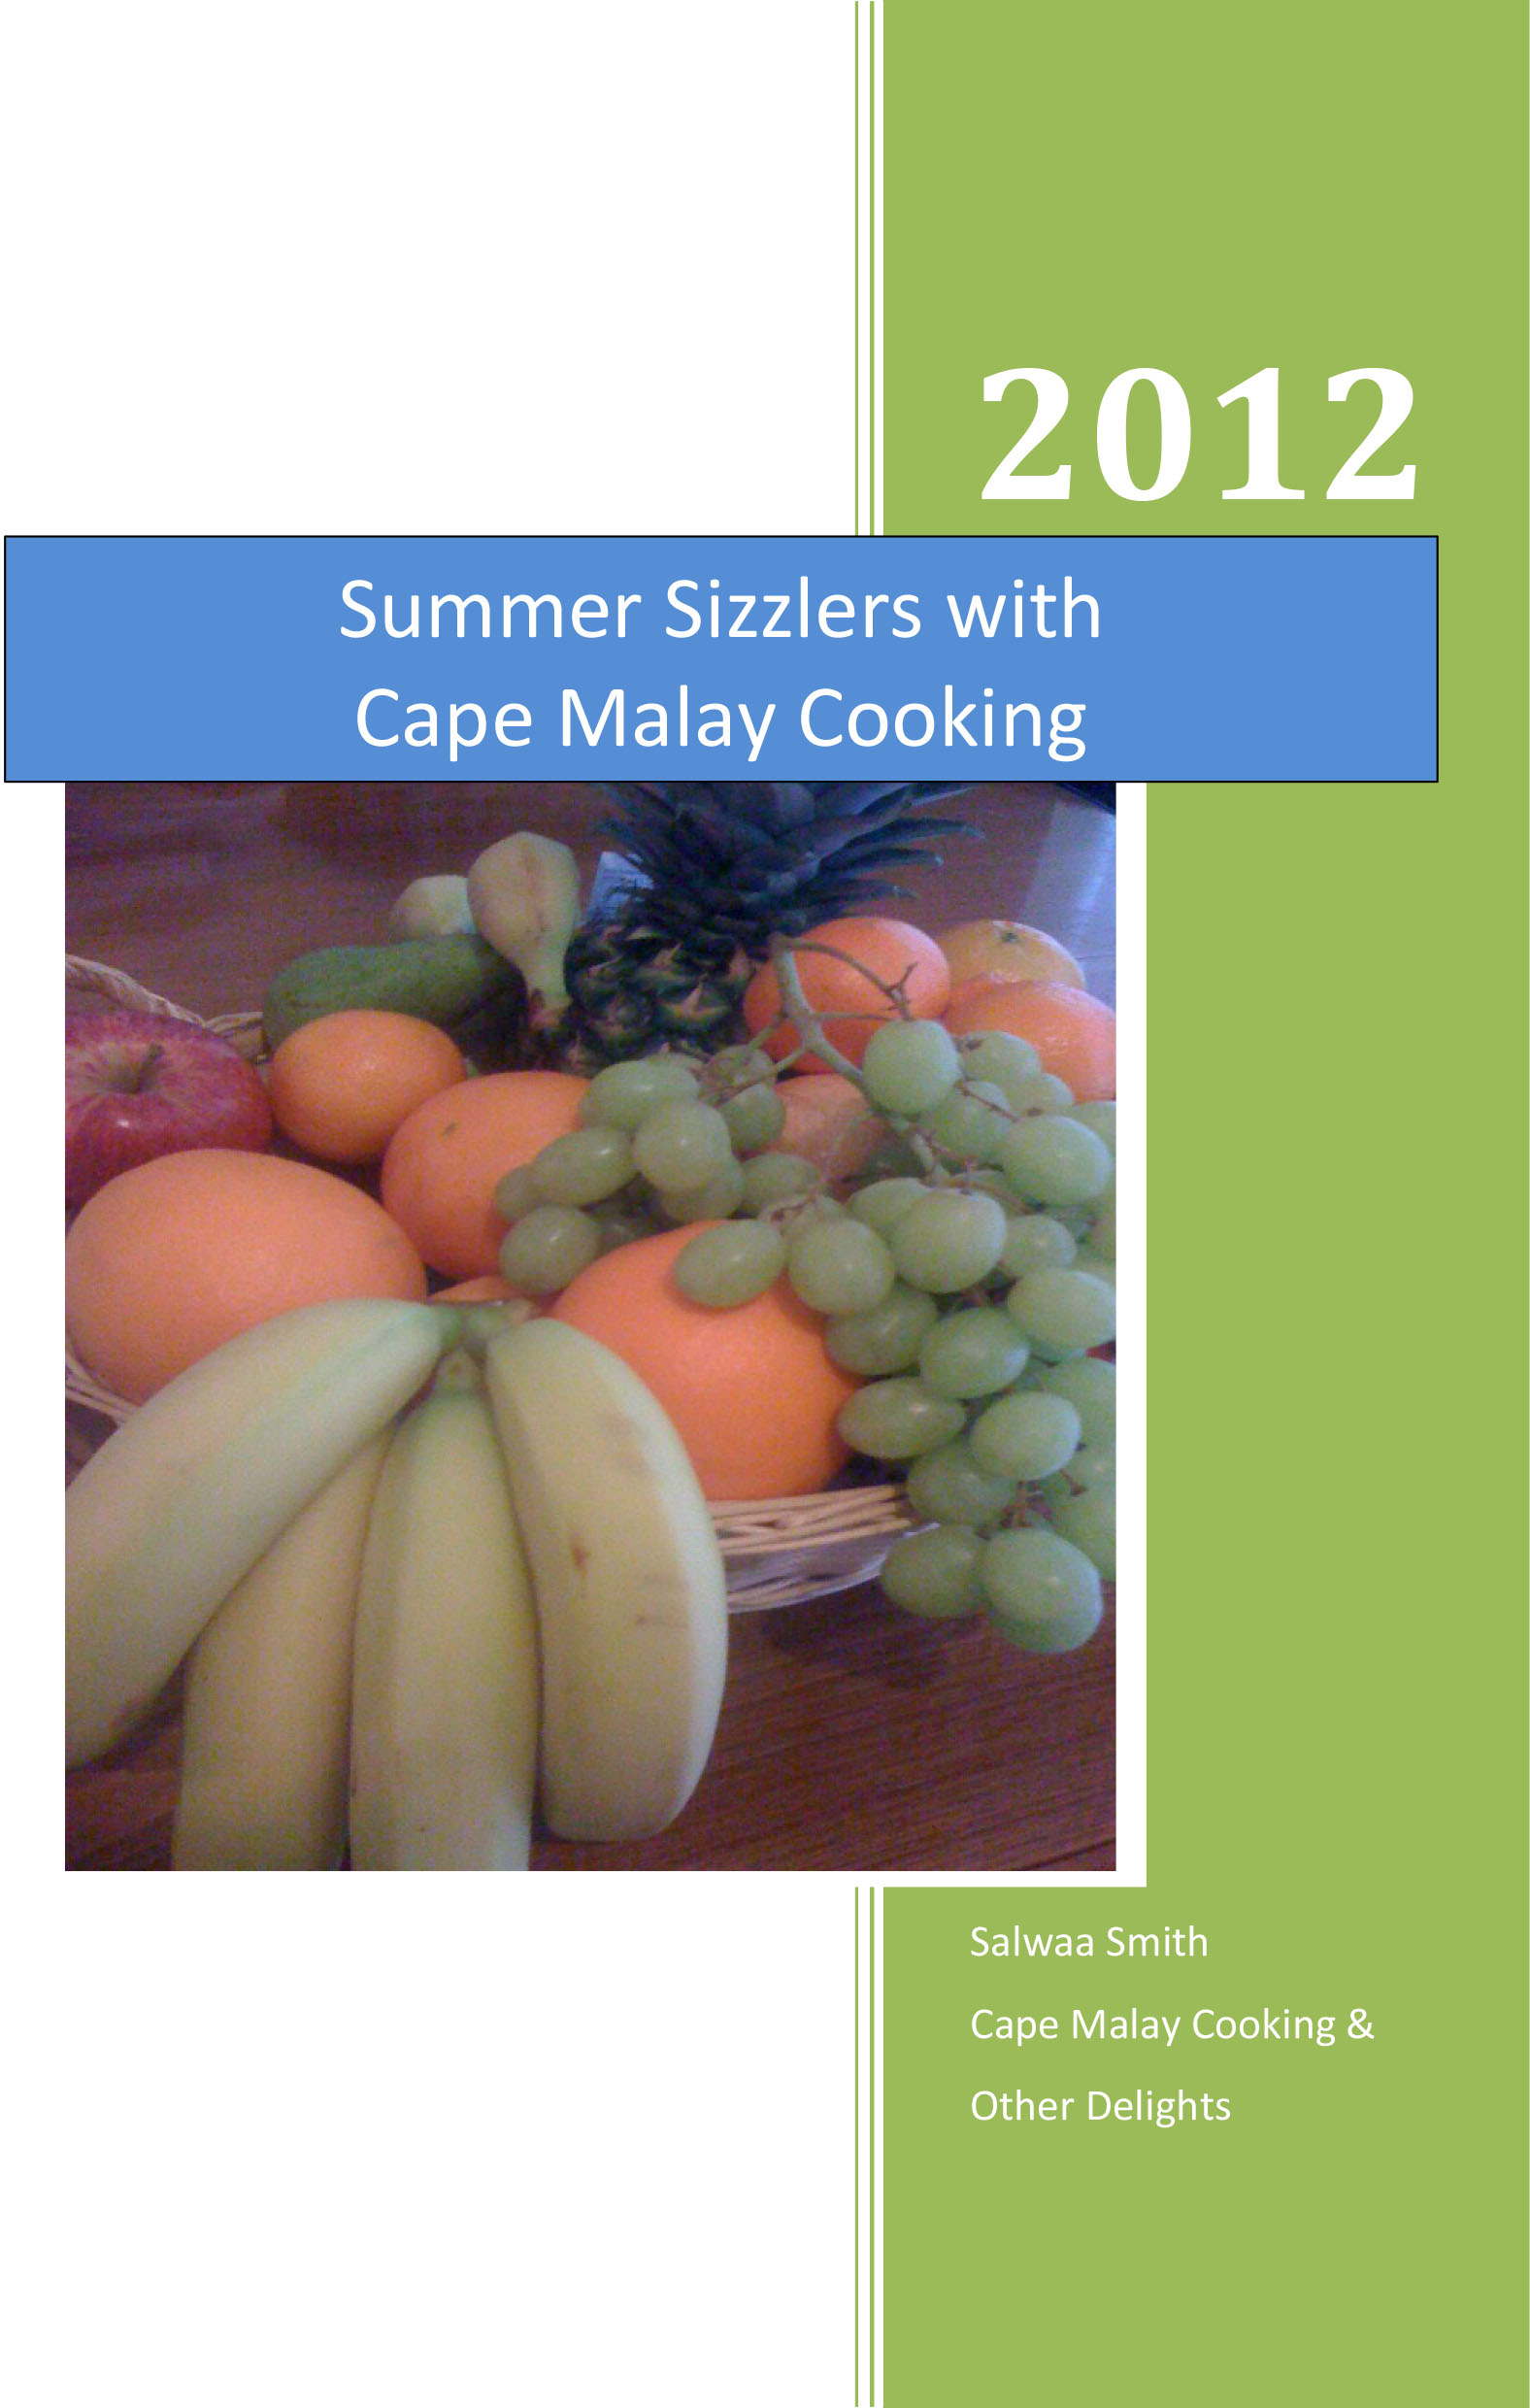 Summer Sizzlers with Cape Malay Cooking